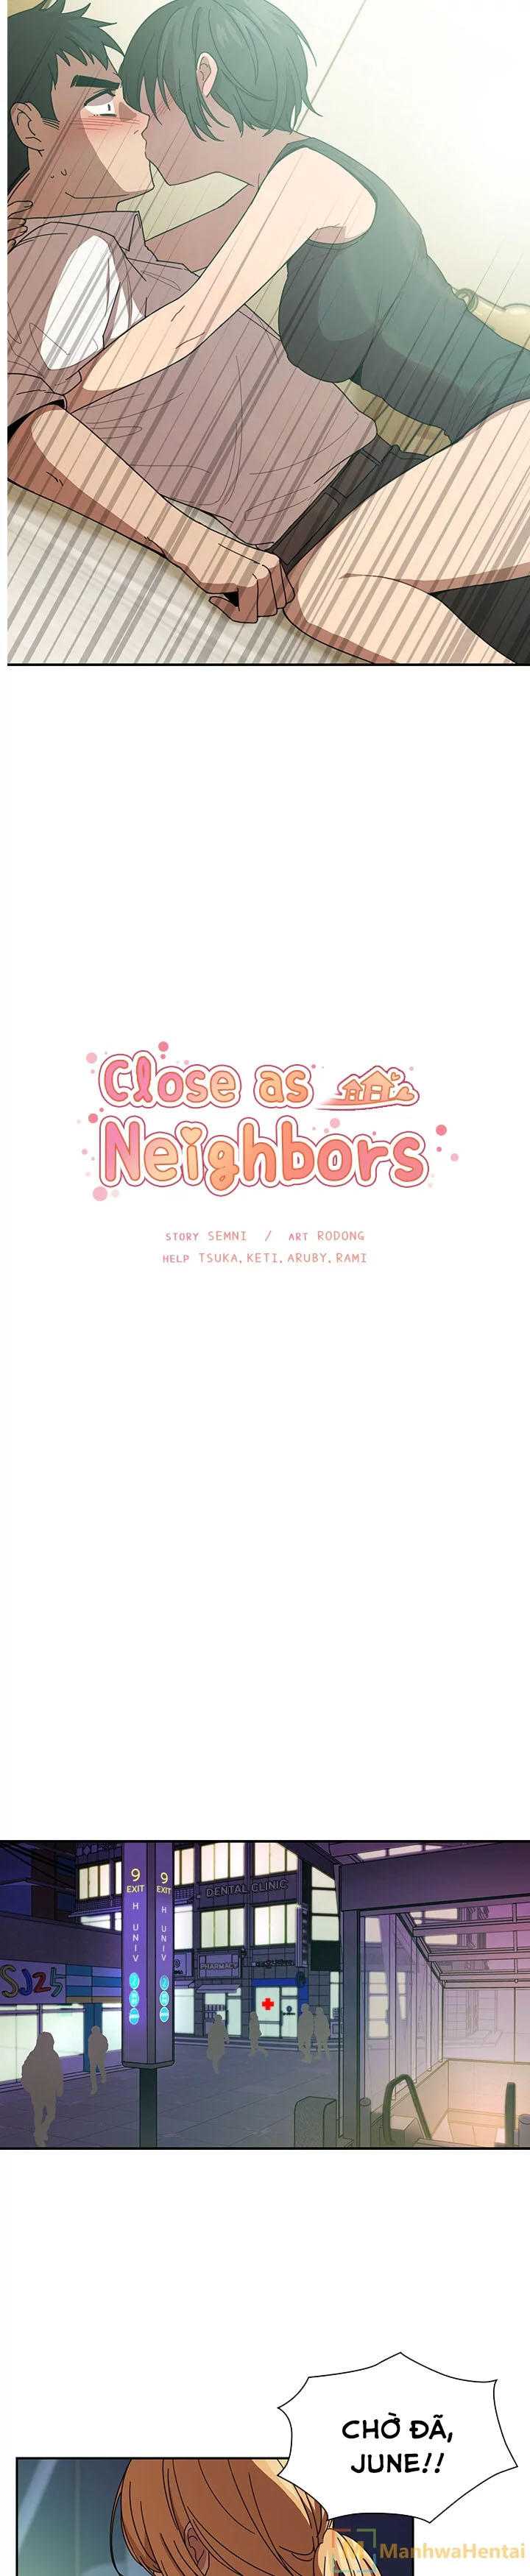 Close as neighbors chap 18 - Trang 3